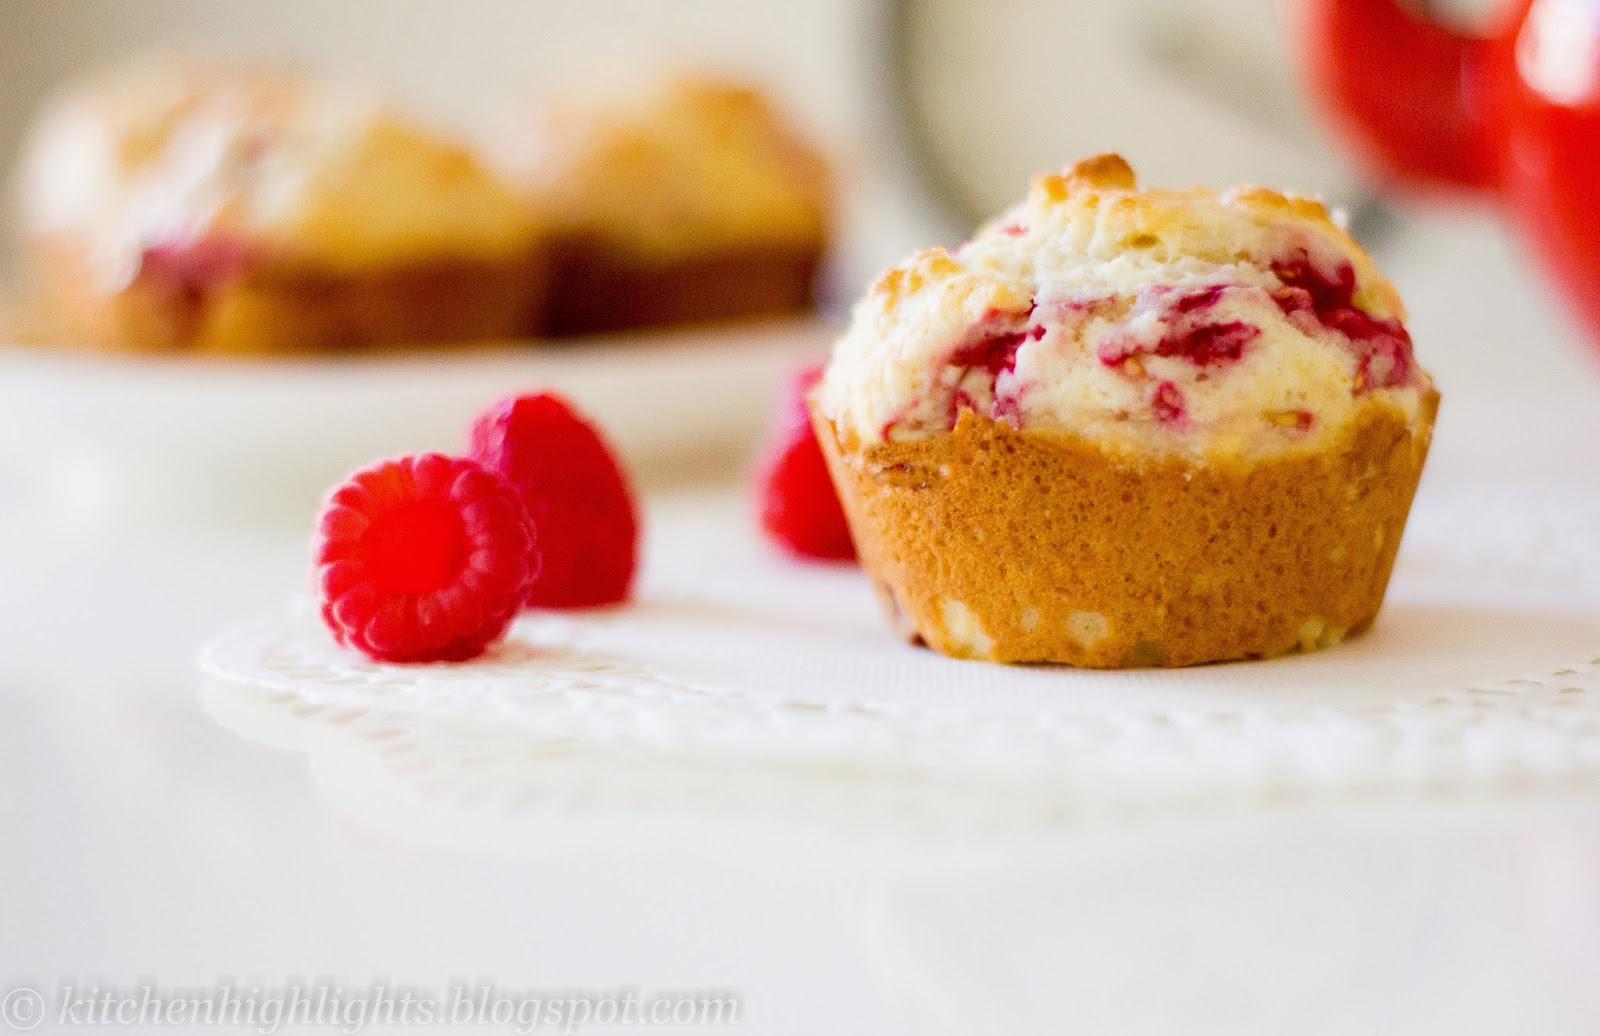 Waking up to the smell of warm raspberry muffins is a delicious way to start off a beautiful morning